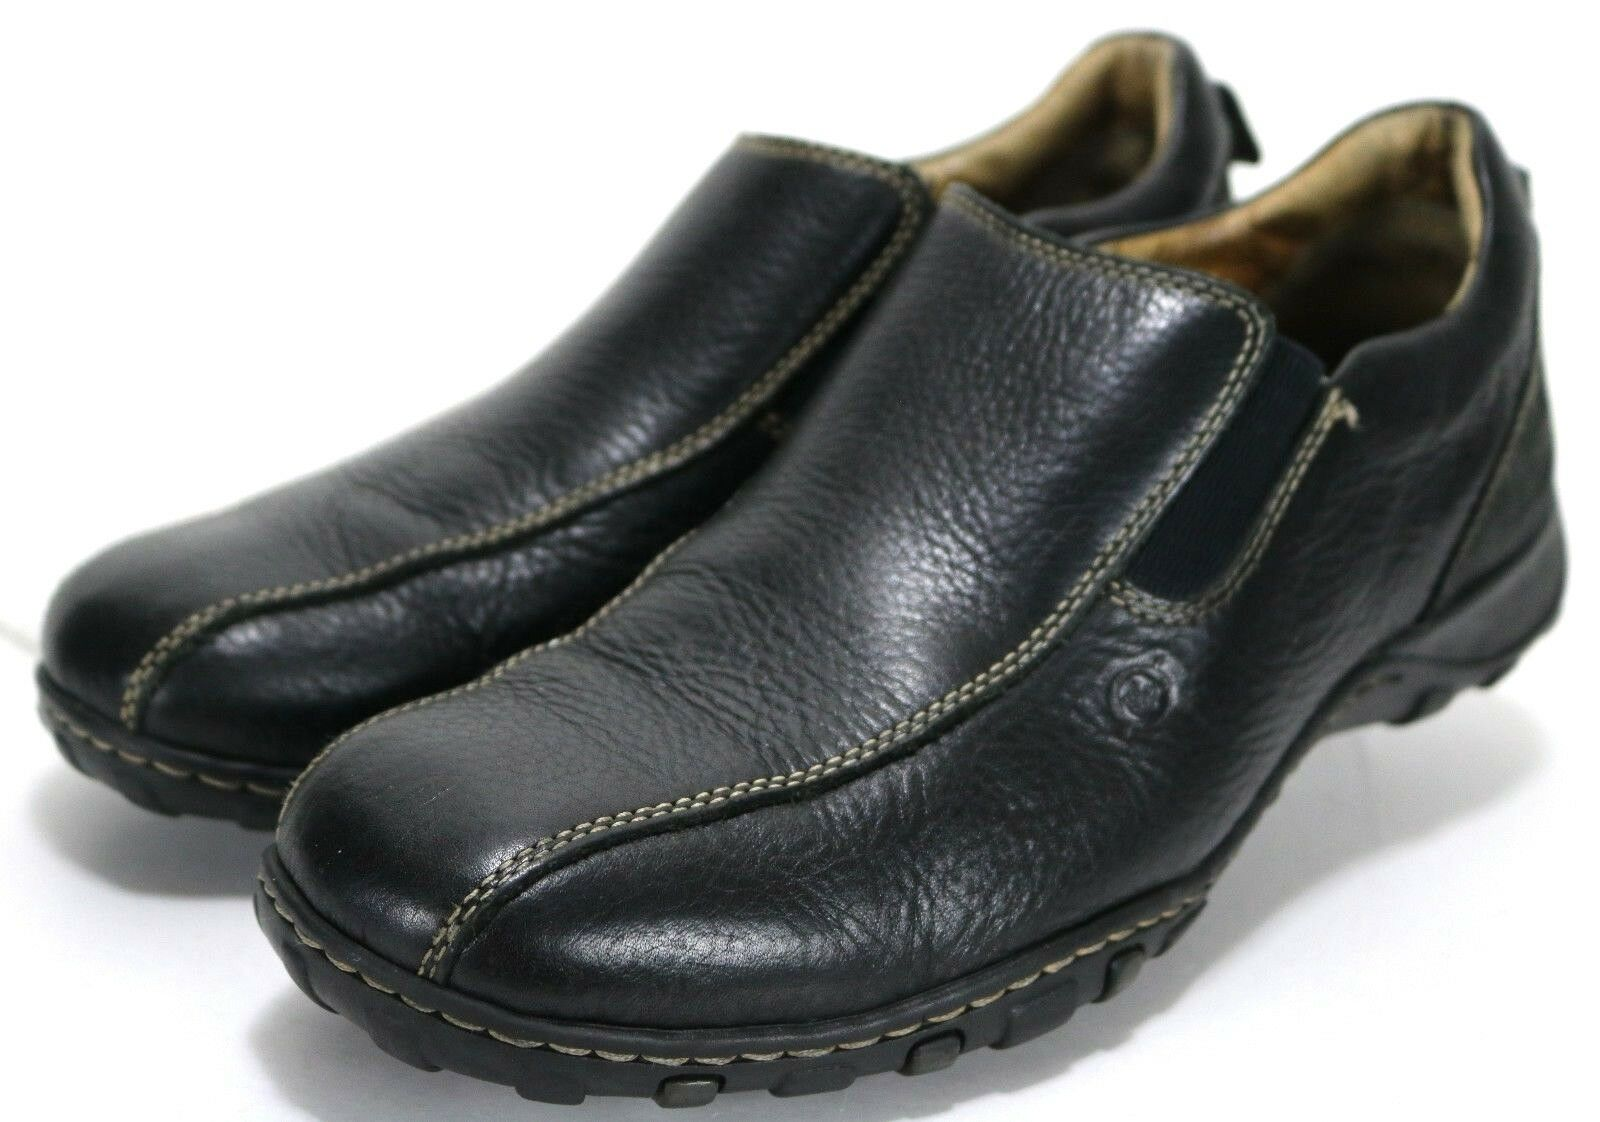 Born Men's  90 Loafers shoes Size 11.5 Pebbled Leather Black Bicycle Toe